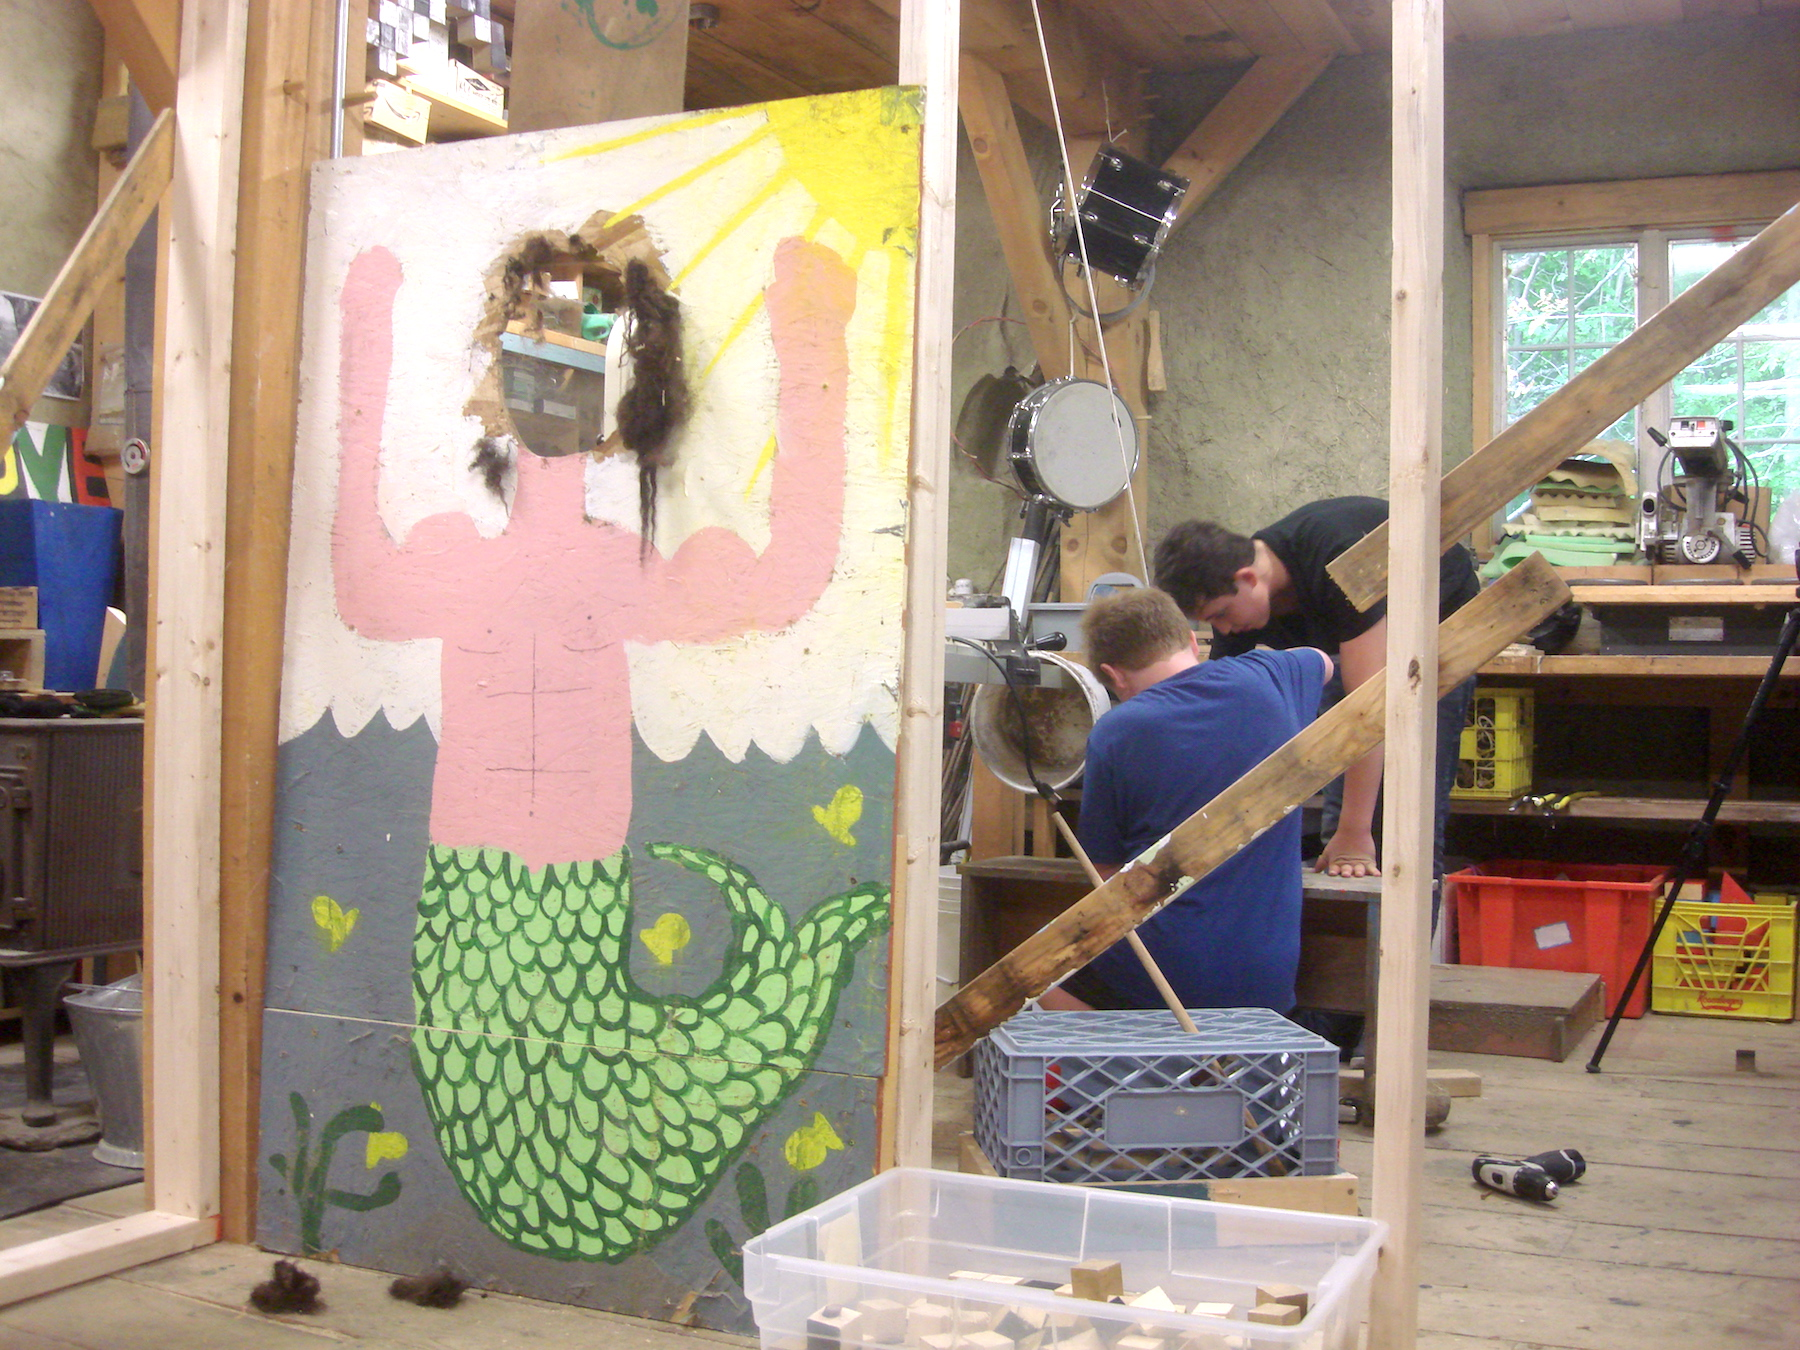 The plywood hanging above the mermaid is suspended by a pulley and counterweight. Noah and Jonas tested a few different items to get the weight just heavy enough.